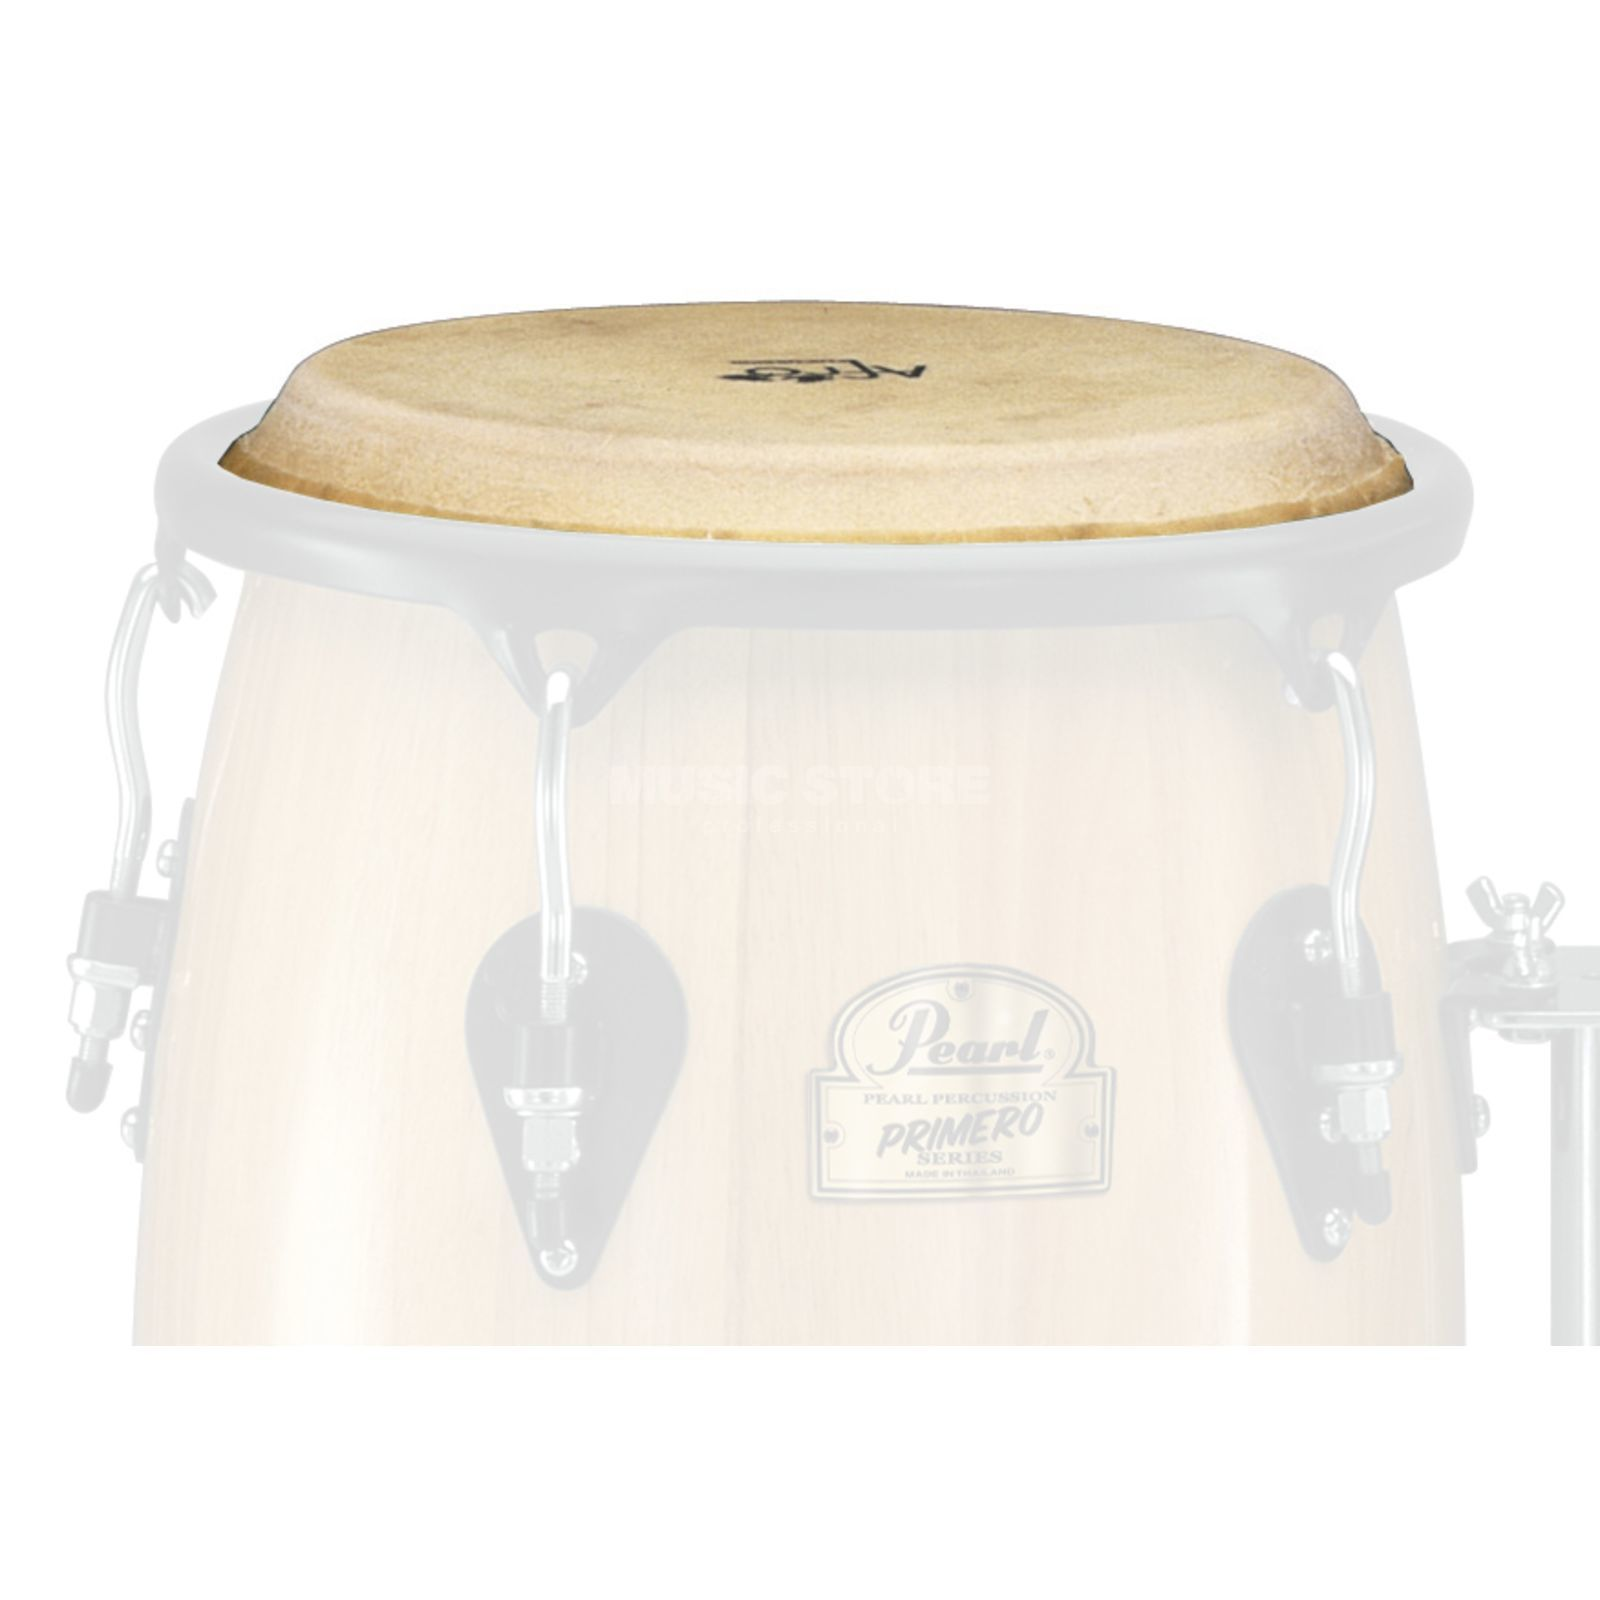 "Pearl Conga Head PH100PW, 10"", f. Primero Wood Изображение товара"